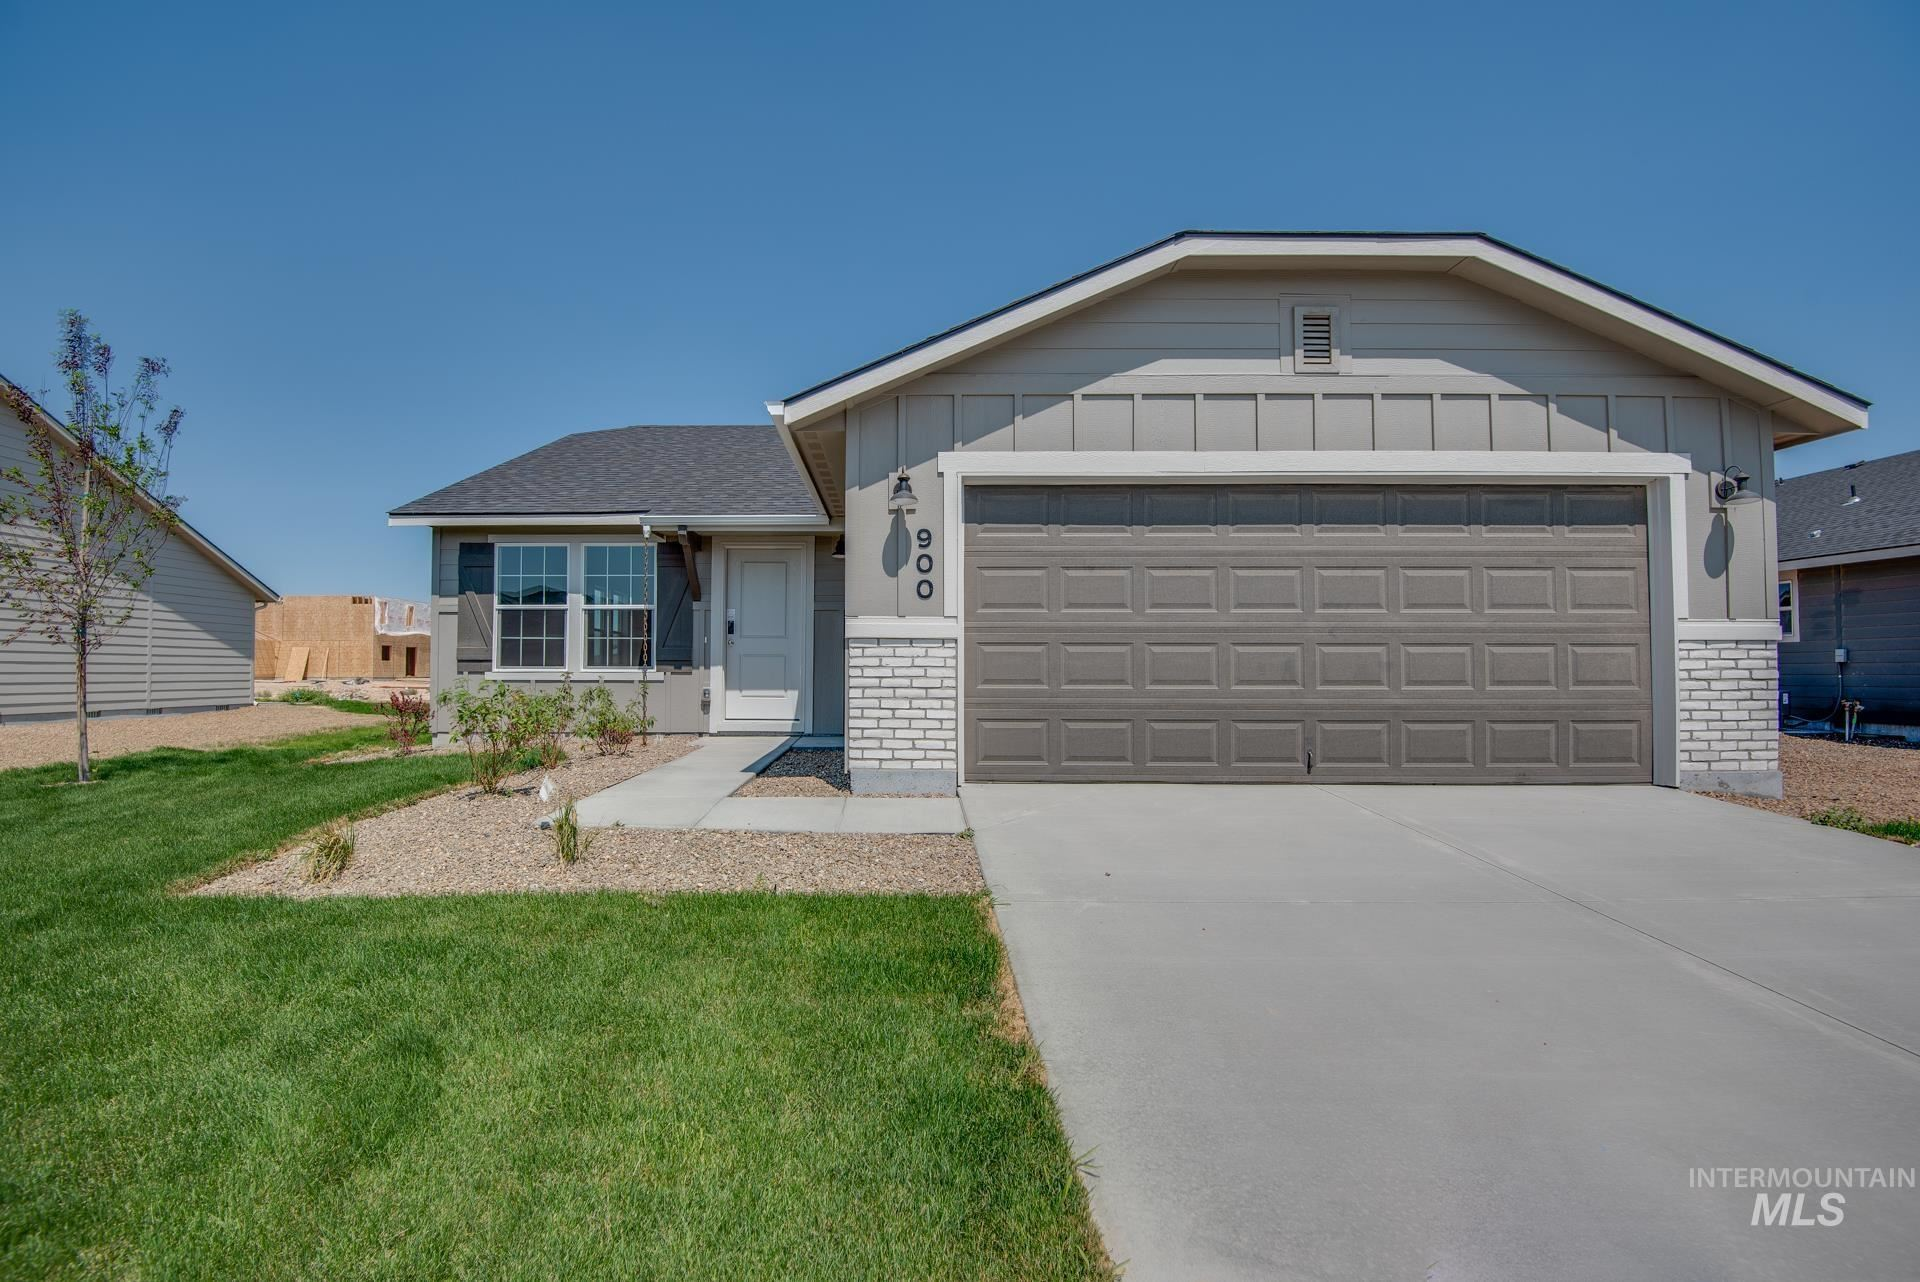 900 SW Crested St, Mountain Home, ID 83647 - MLS#: 98808421